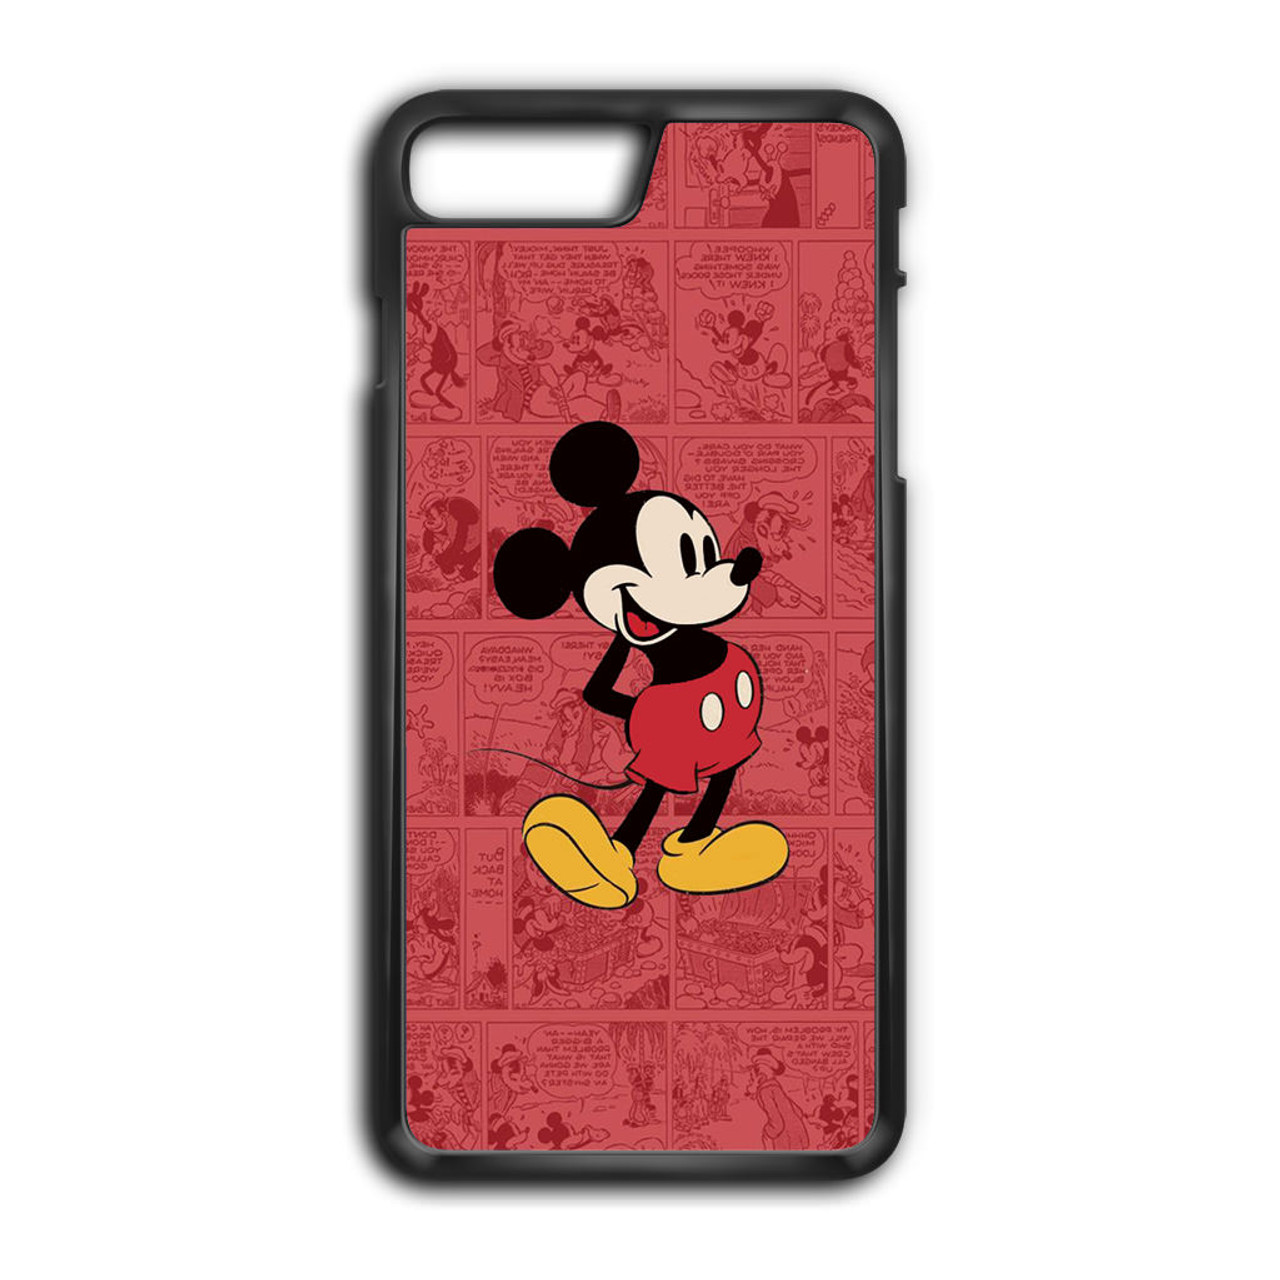 reputable site a553e a14d8 Mickey Mouse Black iPhone 7 Plus Case